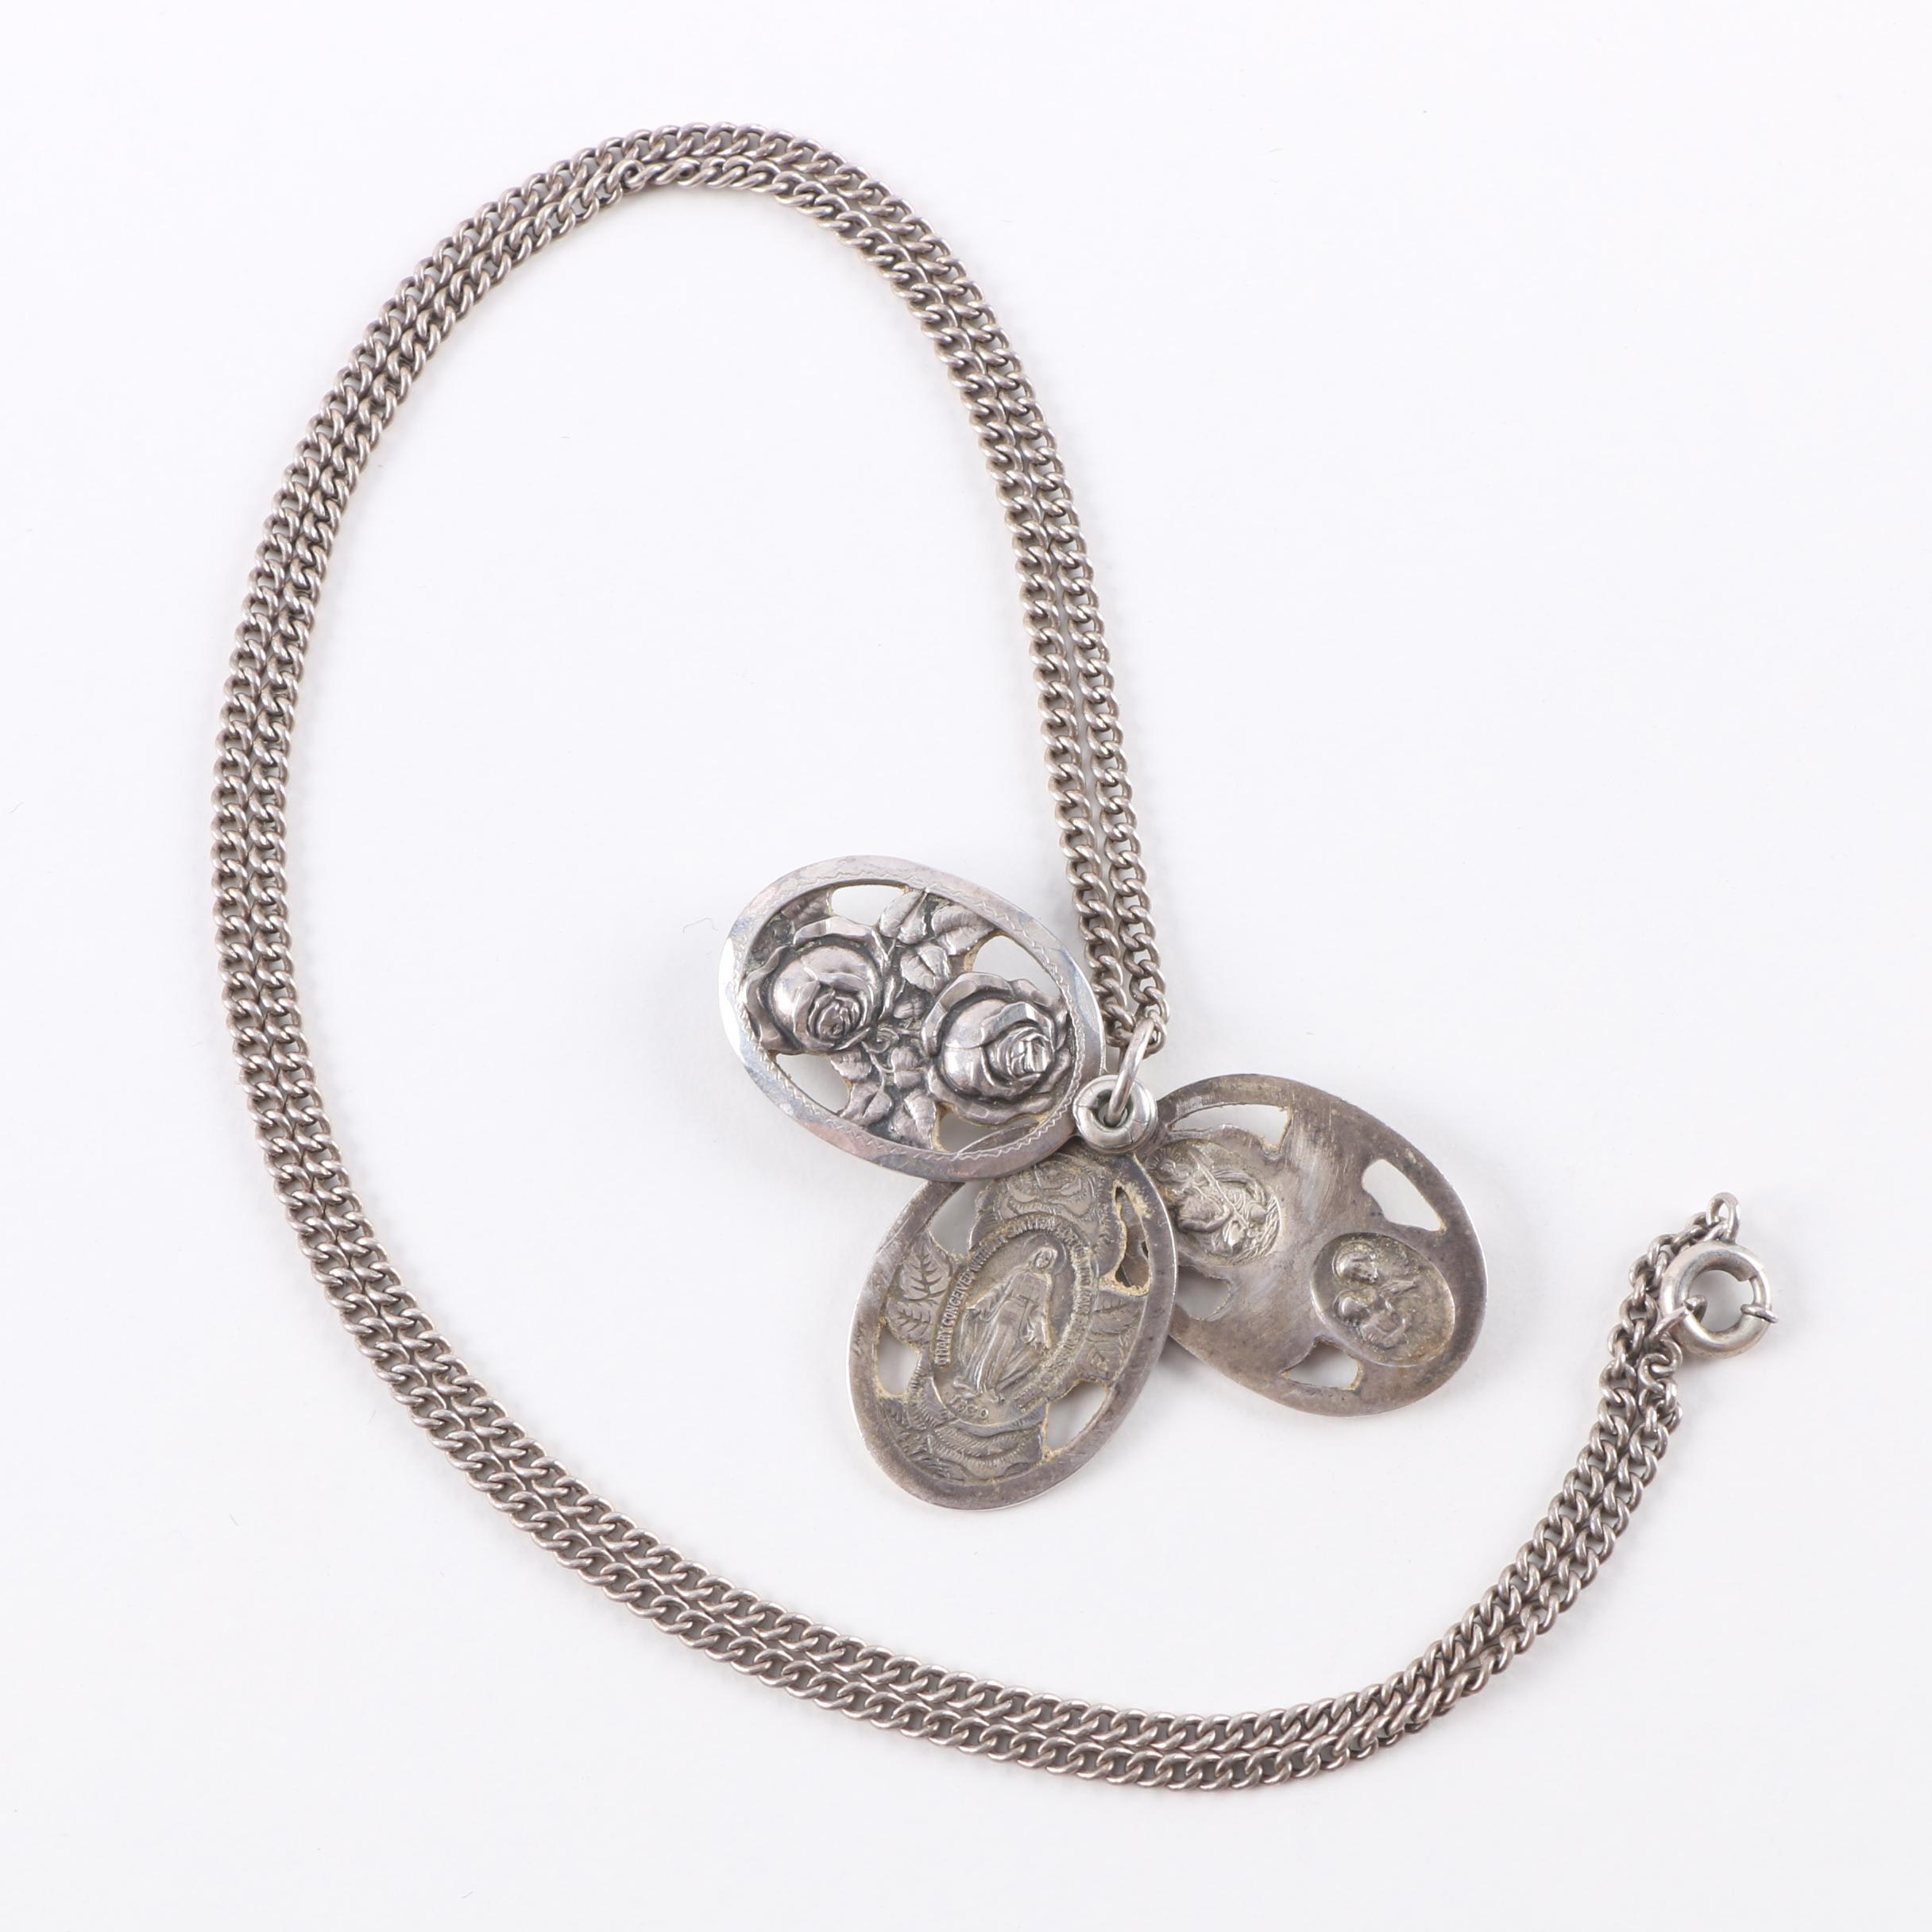 Sterling Silver Necklace With Religious Pendant